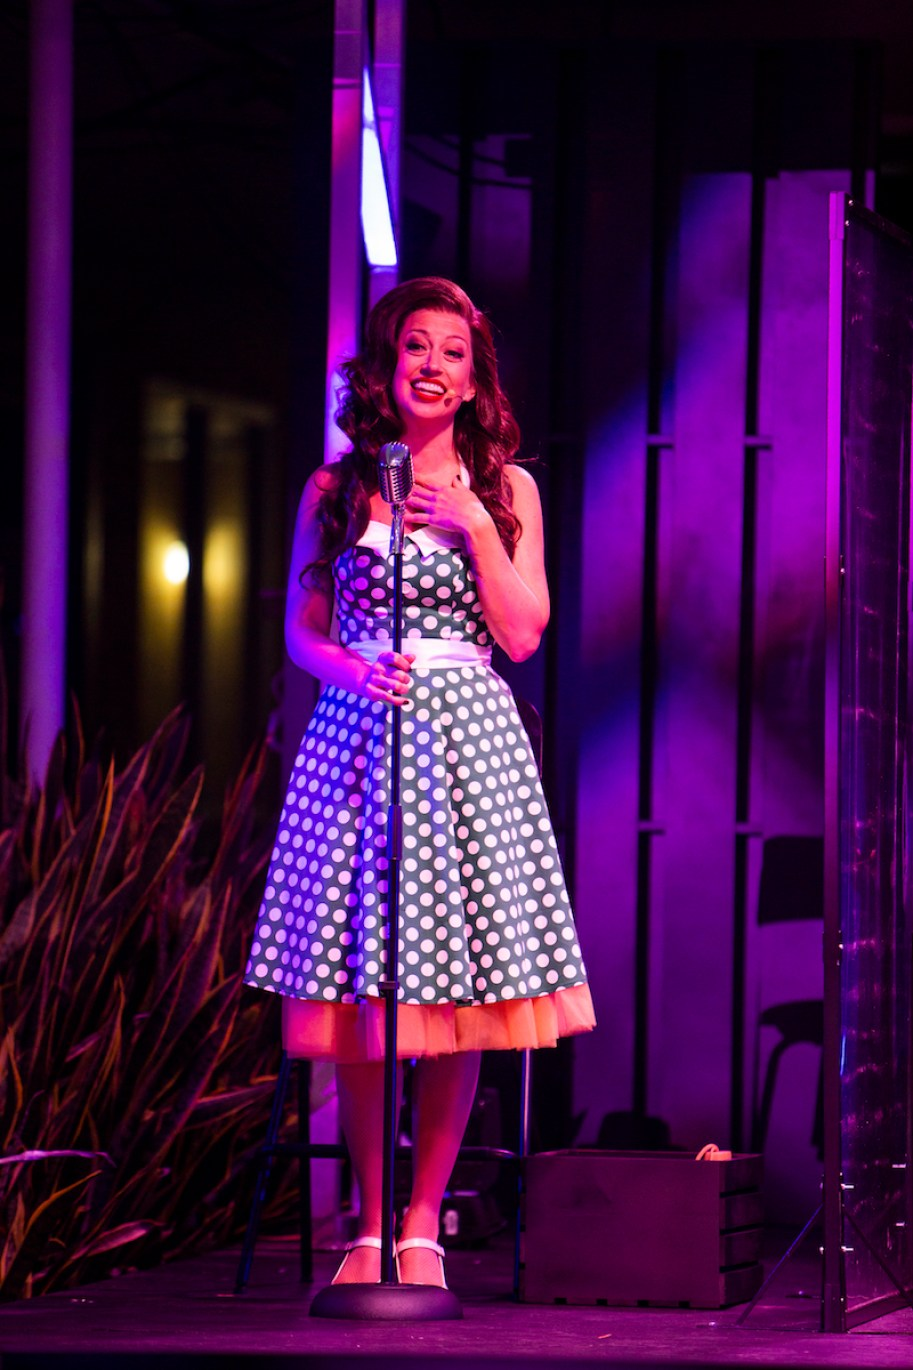 A woman on a stage in front of a microphone in a blue polka dot dress and 1940s hairdo.